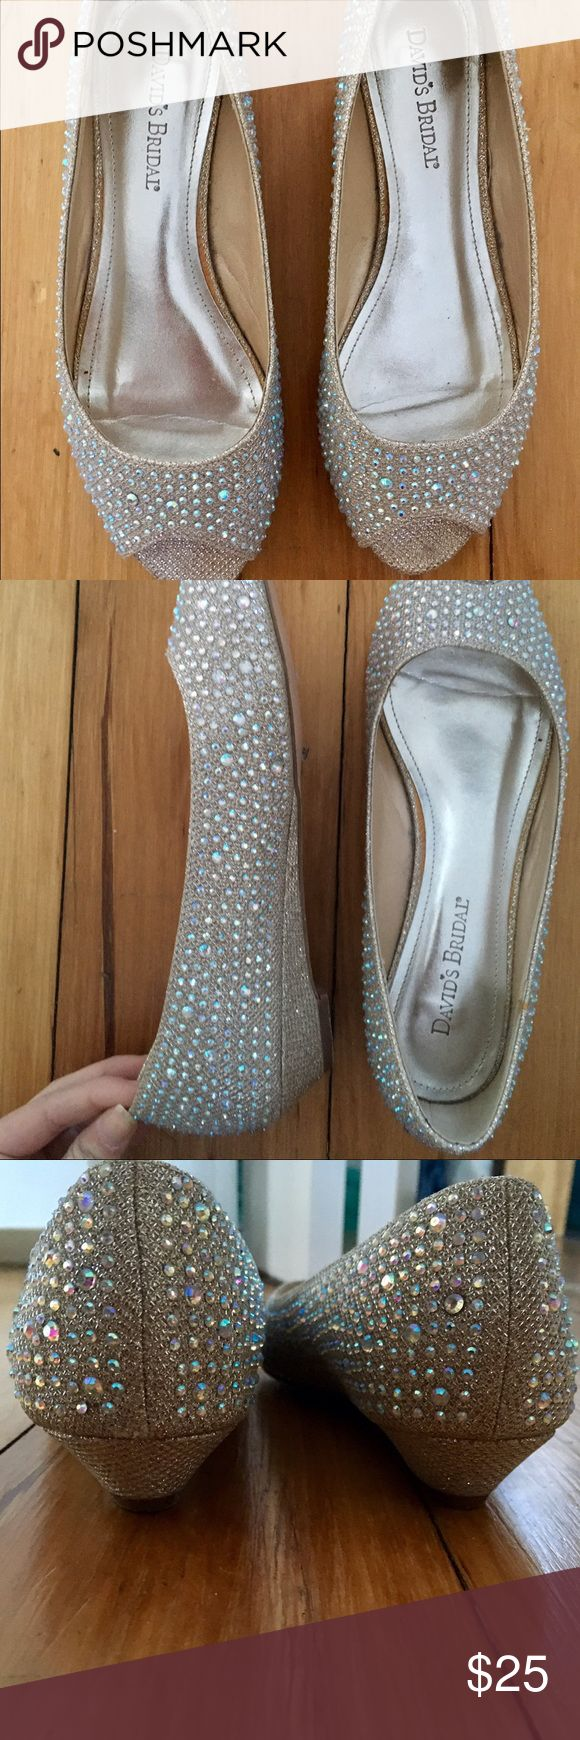 Size 8 David's Bridal sparkly flats David's Bridal. Size 8. Silver sparkles with a hint of gold. Worn once. Light scuffing on bottom of shoes (soles). Otherwise in perfect condition. Terrific for a formal dance or special occasion. David's Bridal Shoes Flats & Loafers